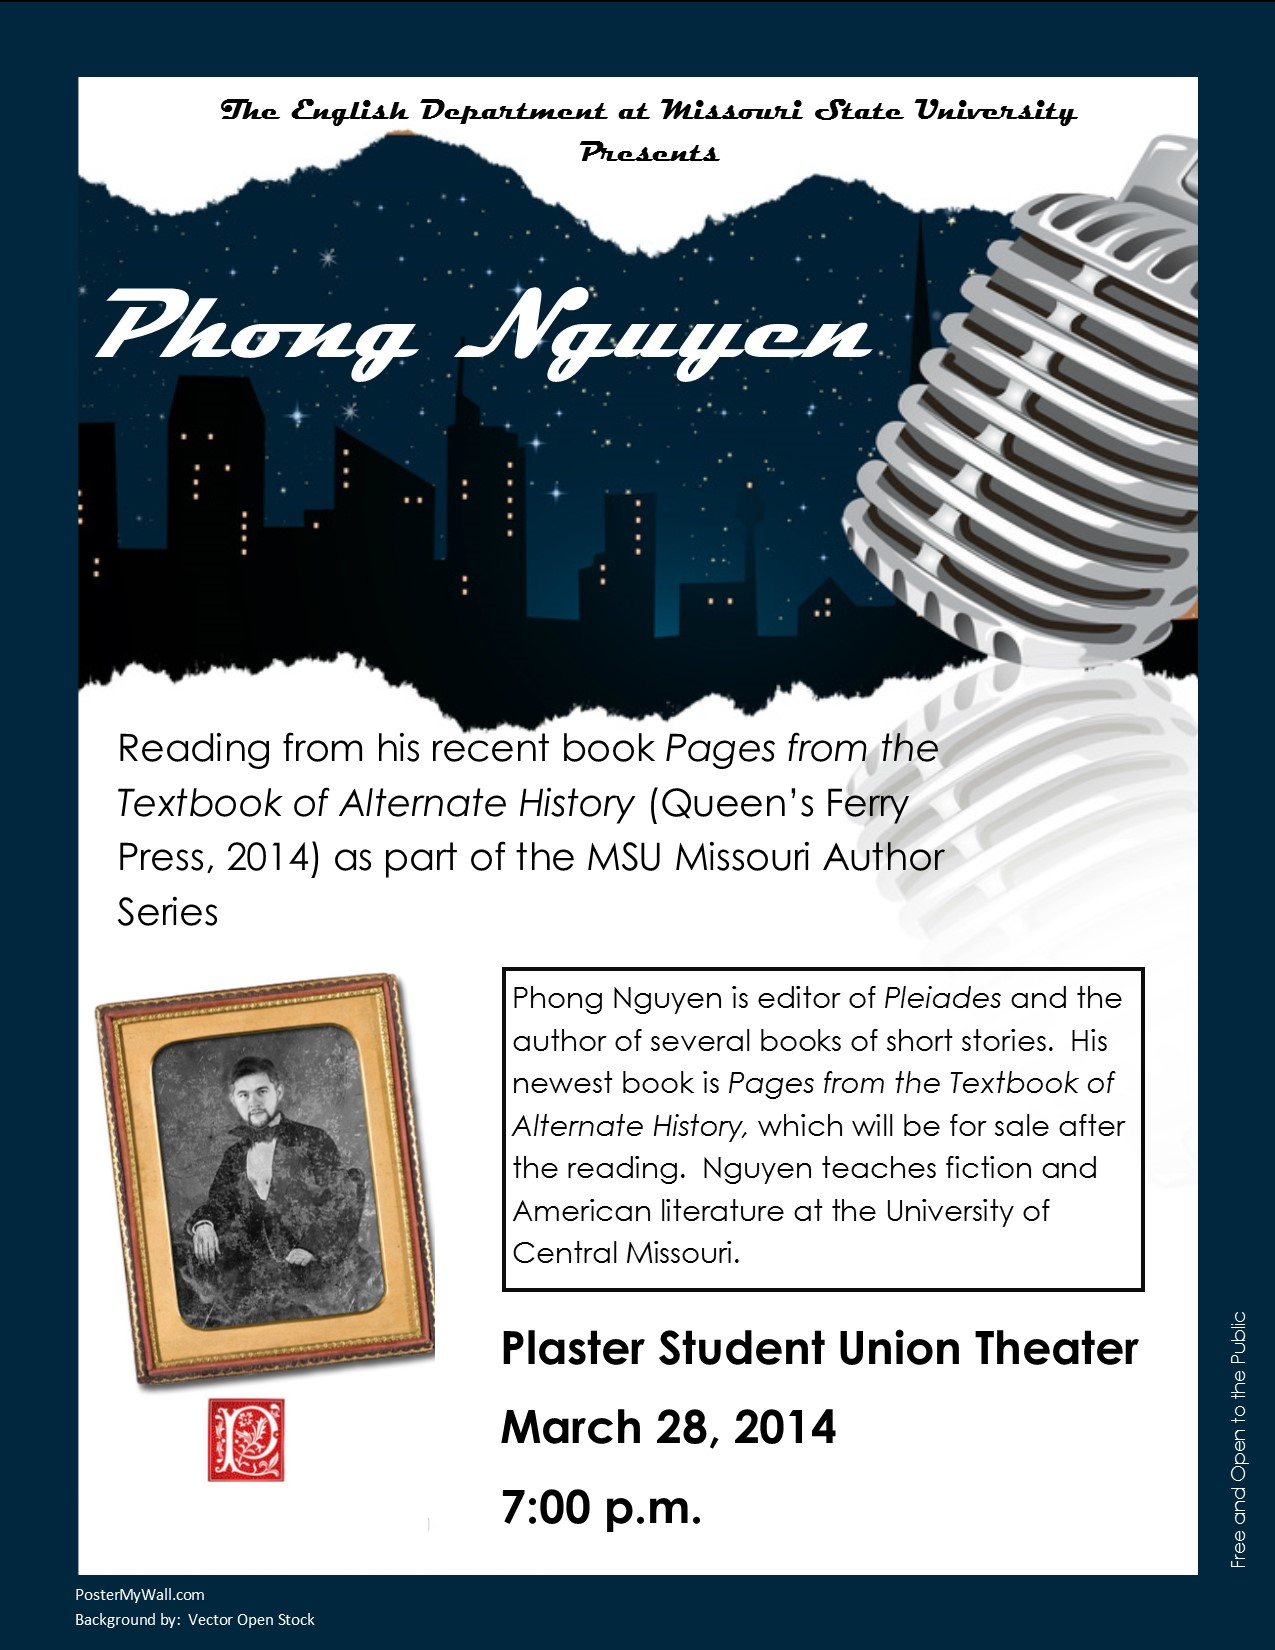 Author Phong Nguyen shares from his new book on March 28